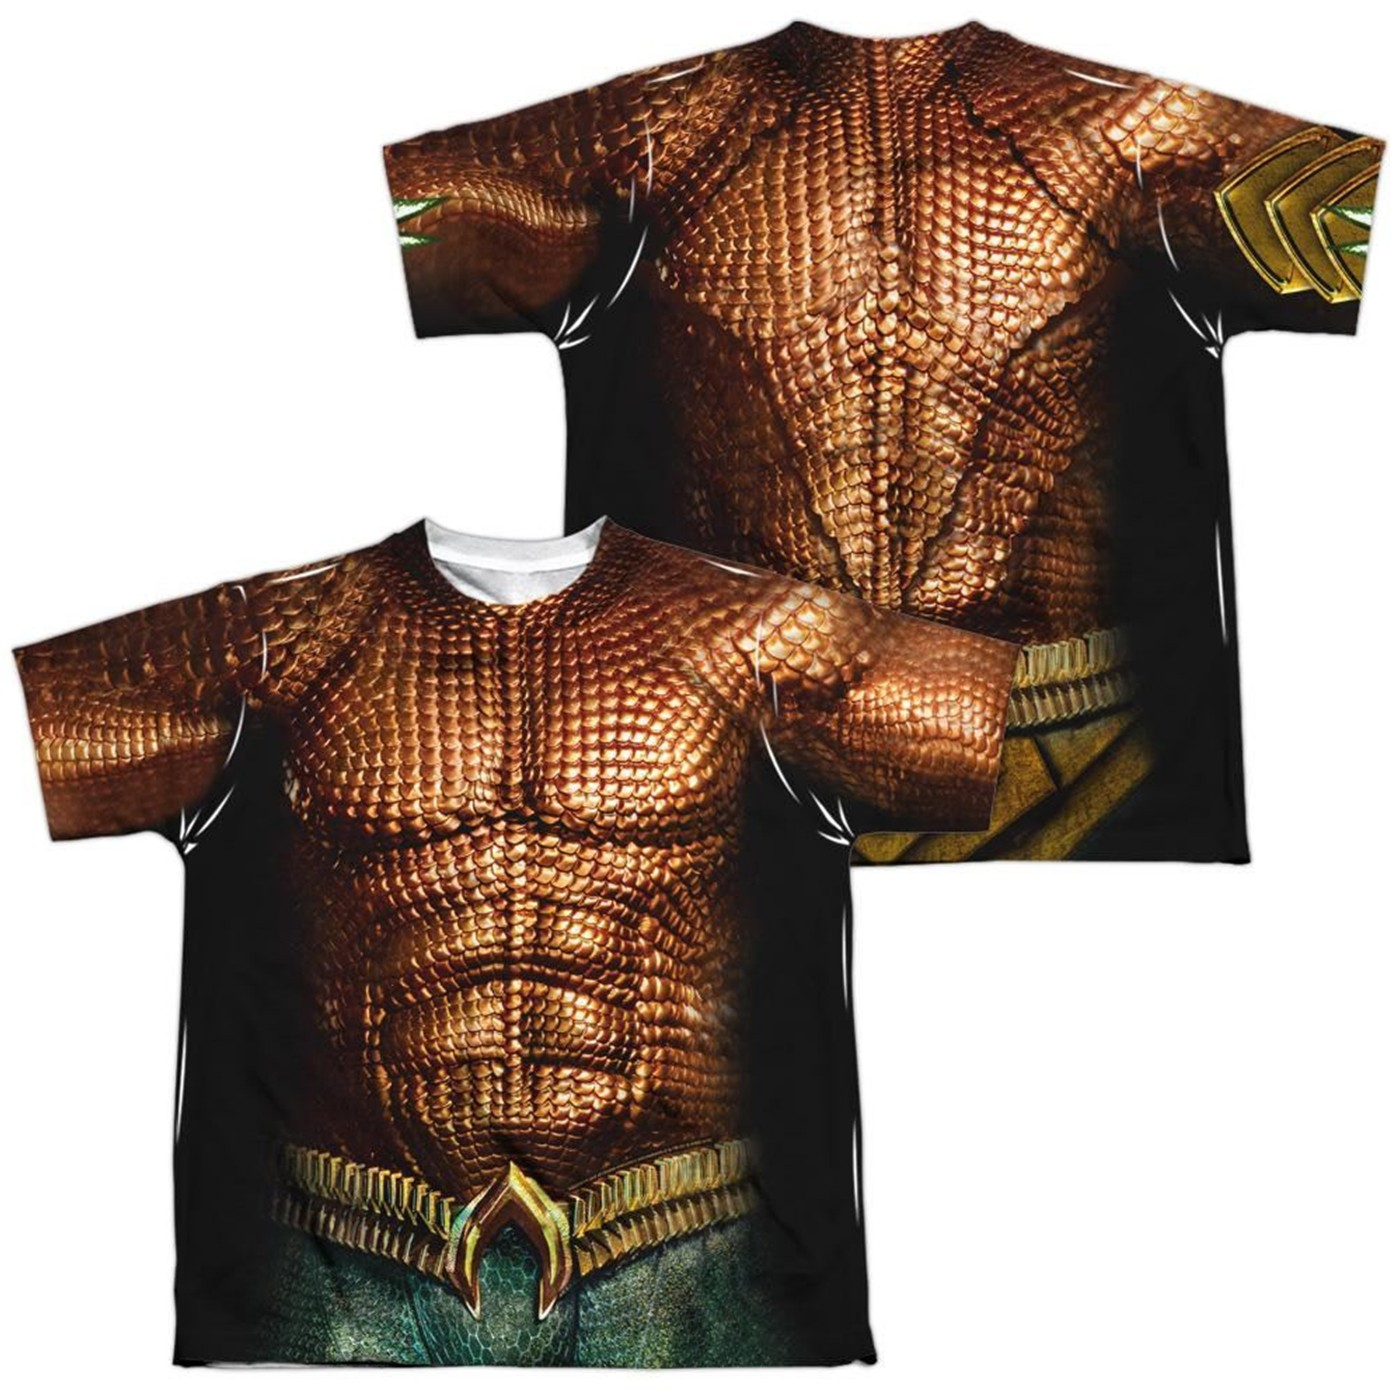 Aquaman Movie Double Sided Costume Men's T-shirt